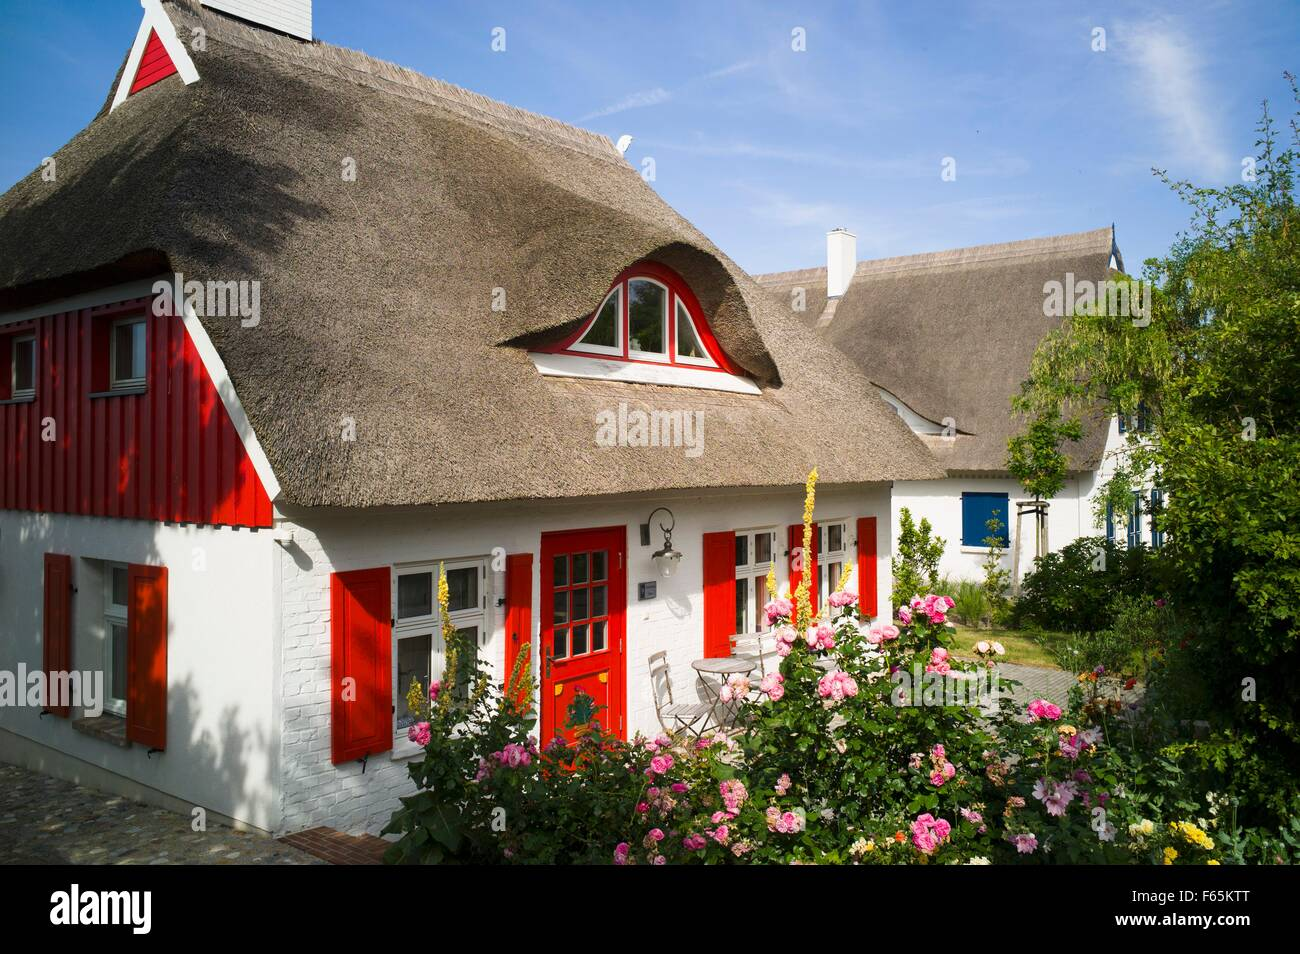 Red Door House a thatched roof house with a red door and shutters, ahrenshoop on